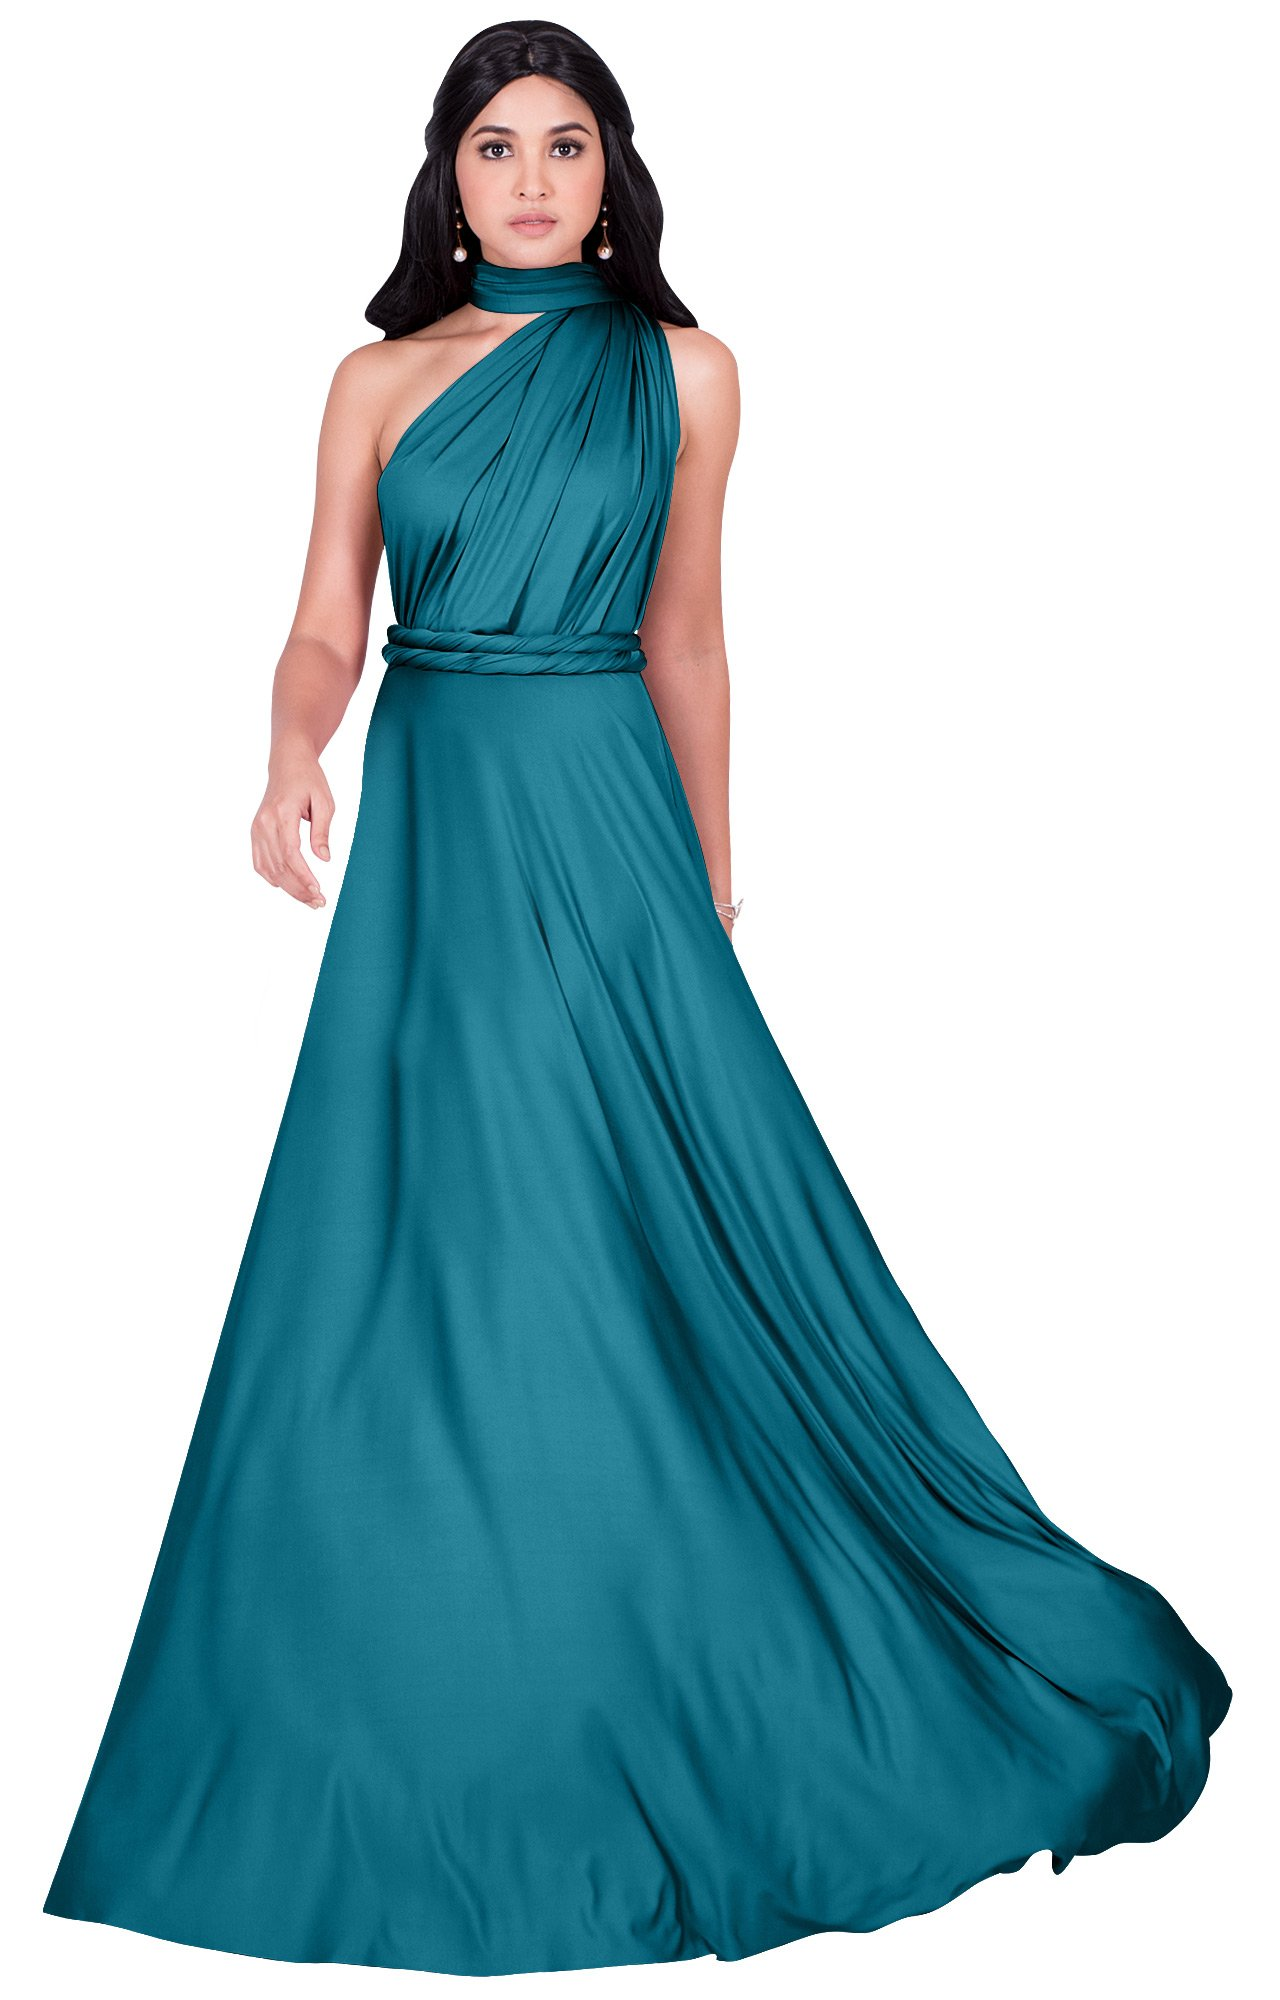 KOH KOH Womens Long Bridesmaid Multi-Way Wedding Convertible Wrap Infinity Cocktail Sexy Summer Party Formal Prom Transformer Gown Gowns Maxi Dress Dresses, Blue Teal M 8-10